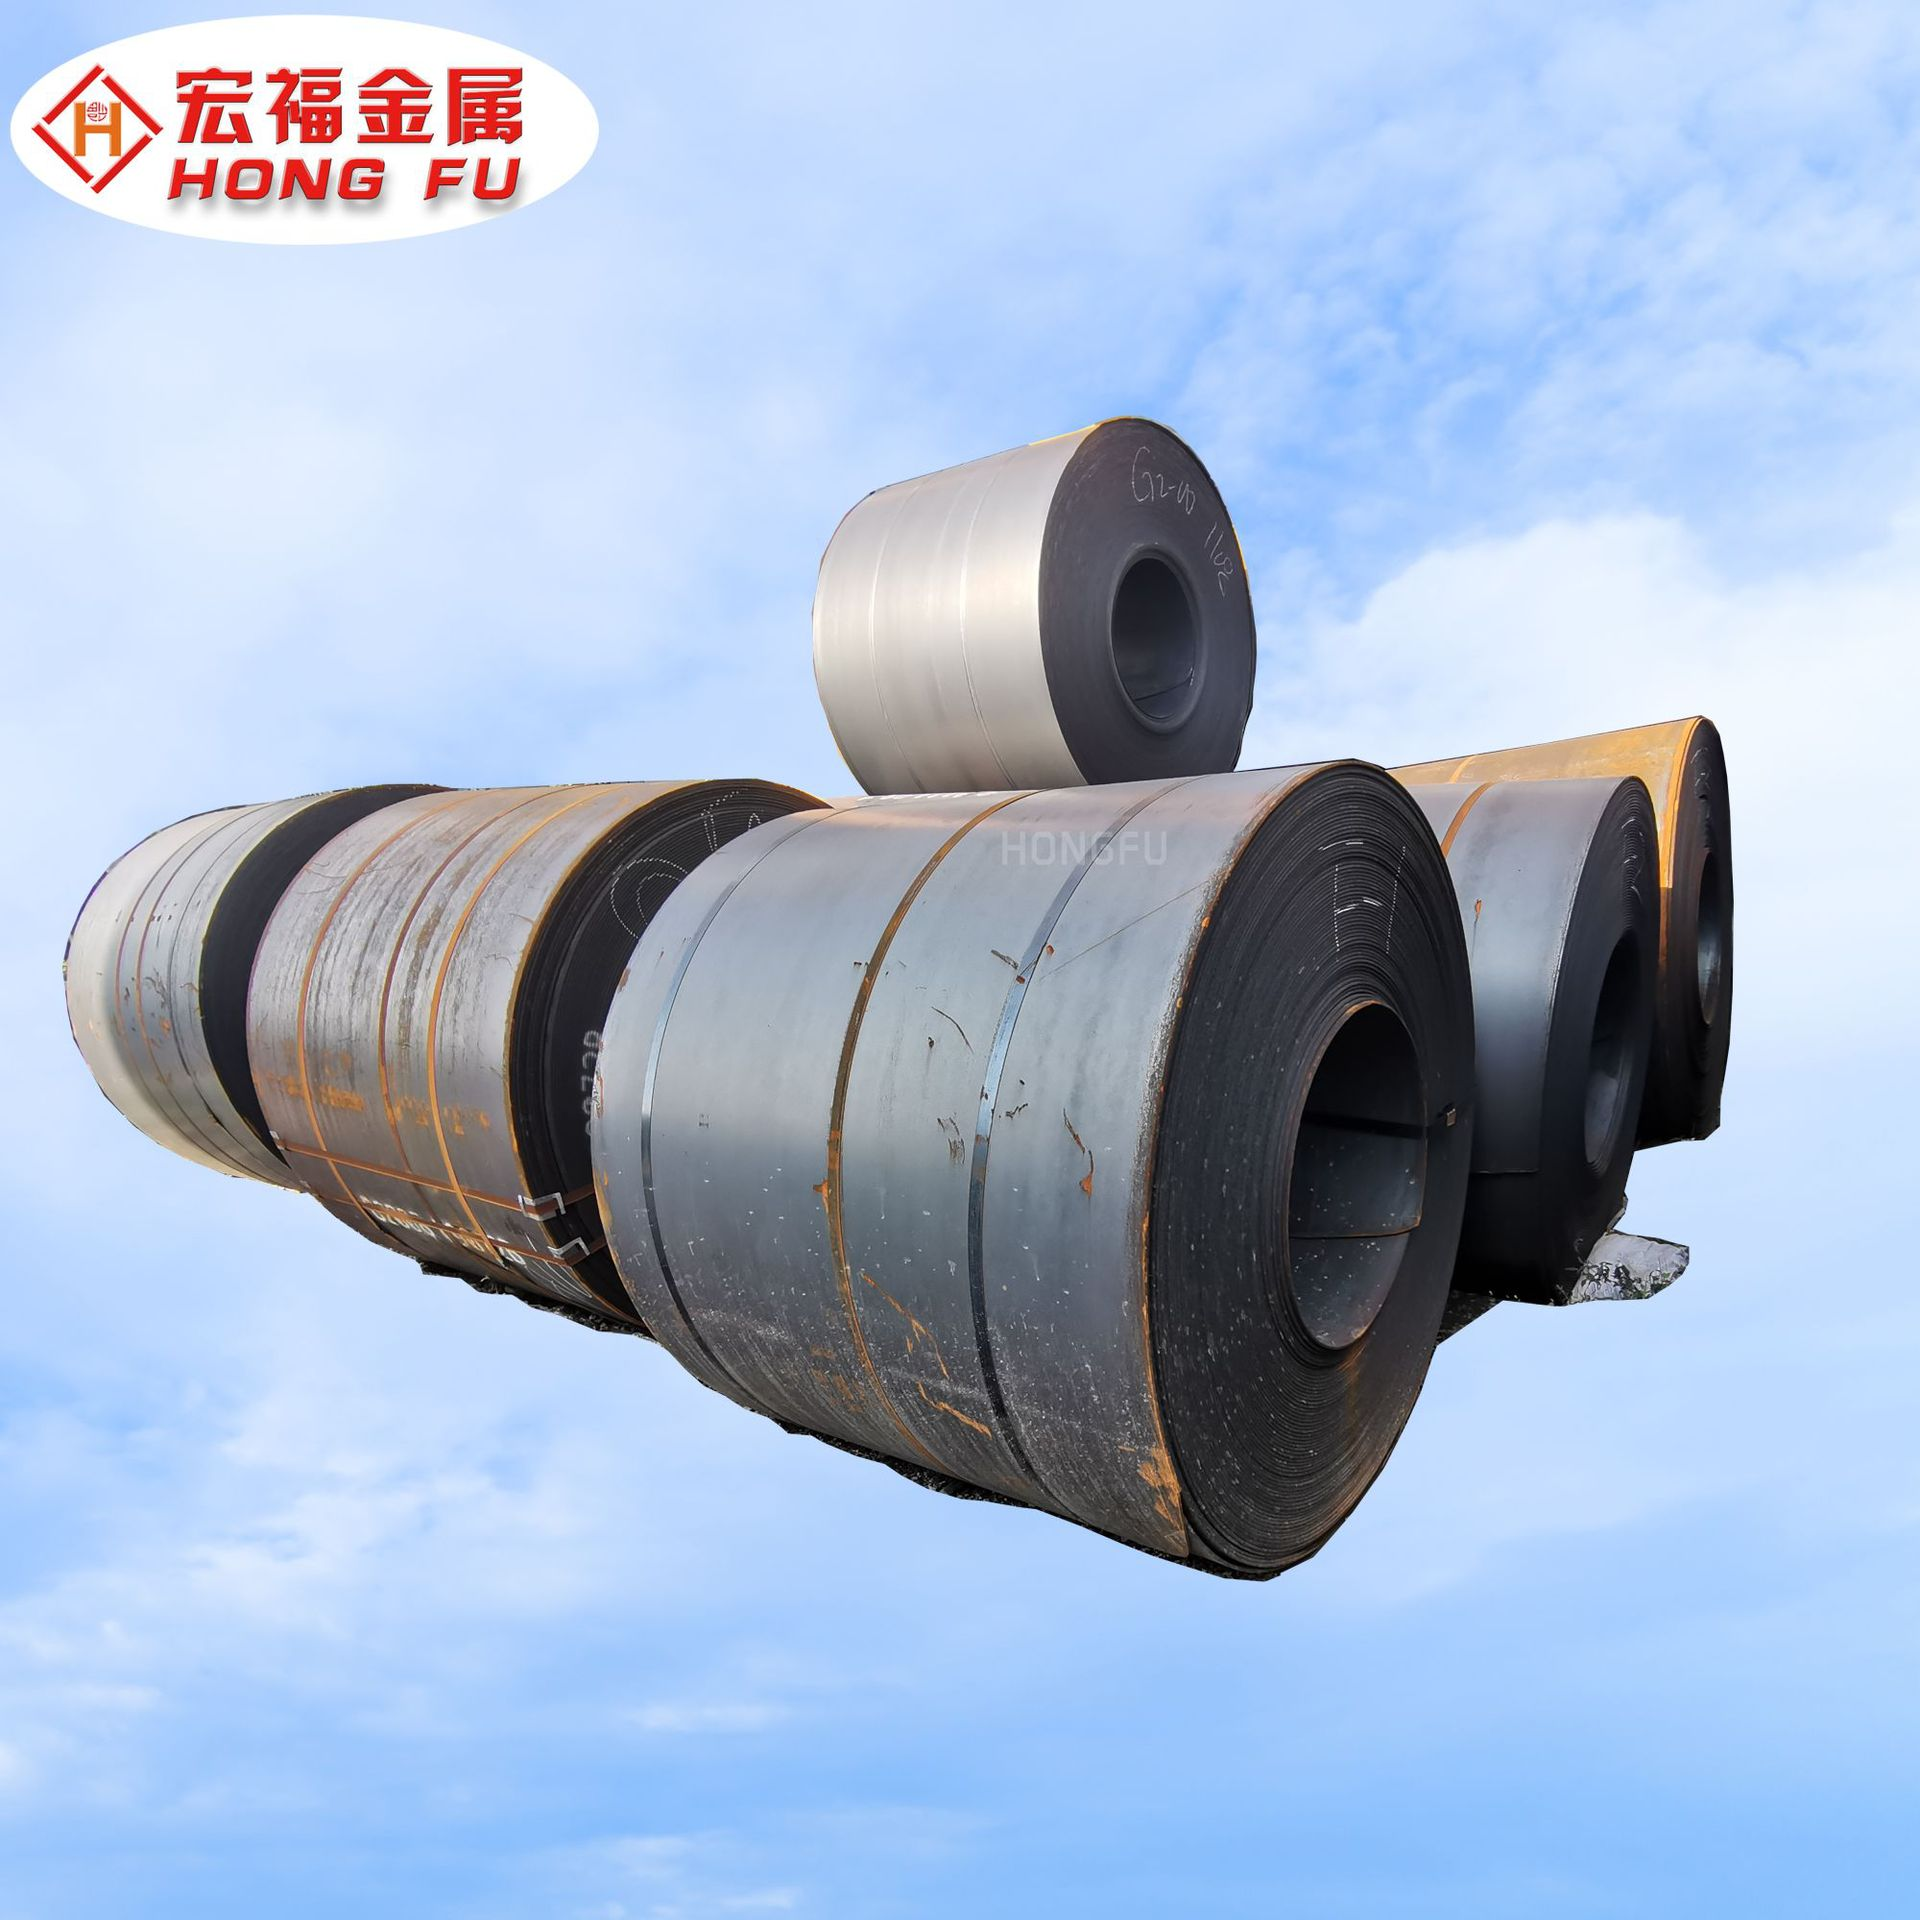 SPHC hot coil Japanese standard hot-rolled steel coil can be customized, all specifications can be s